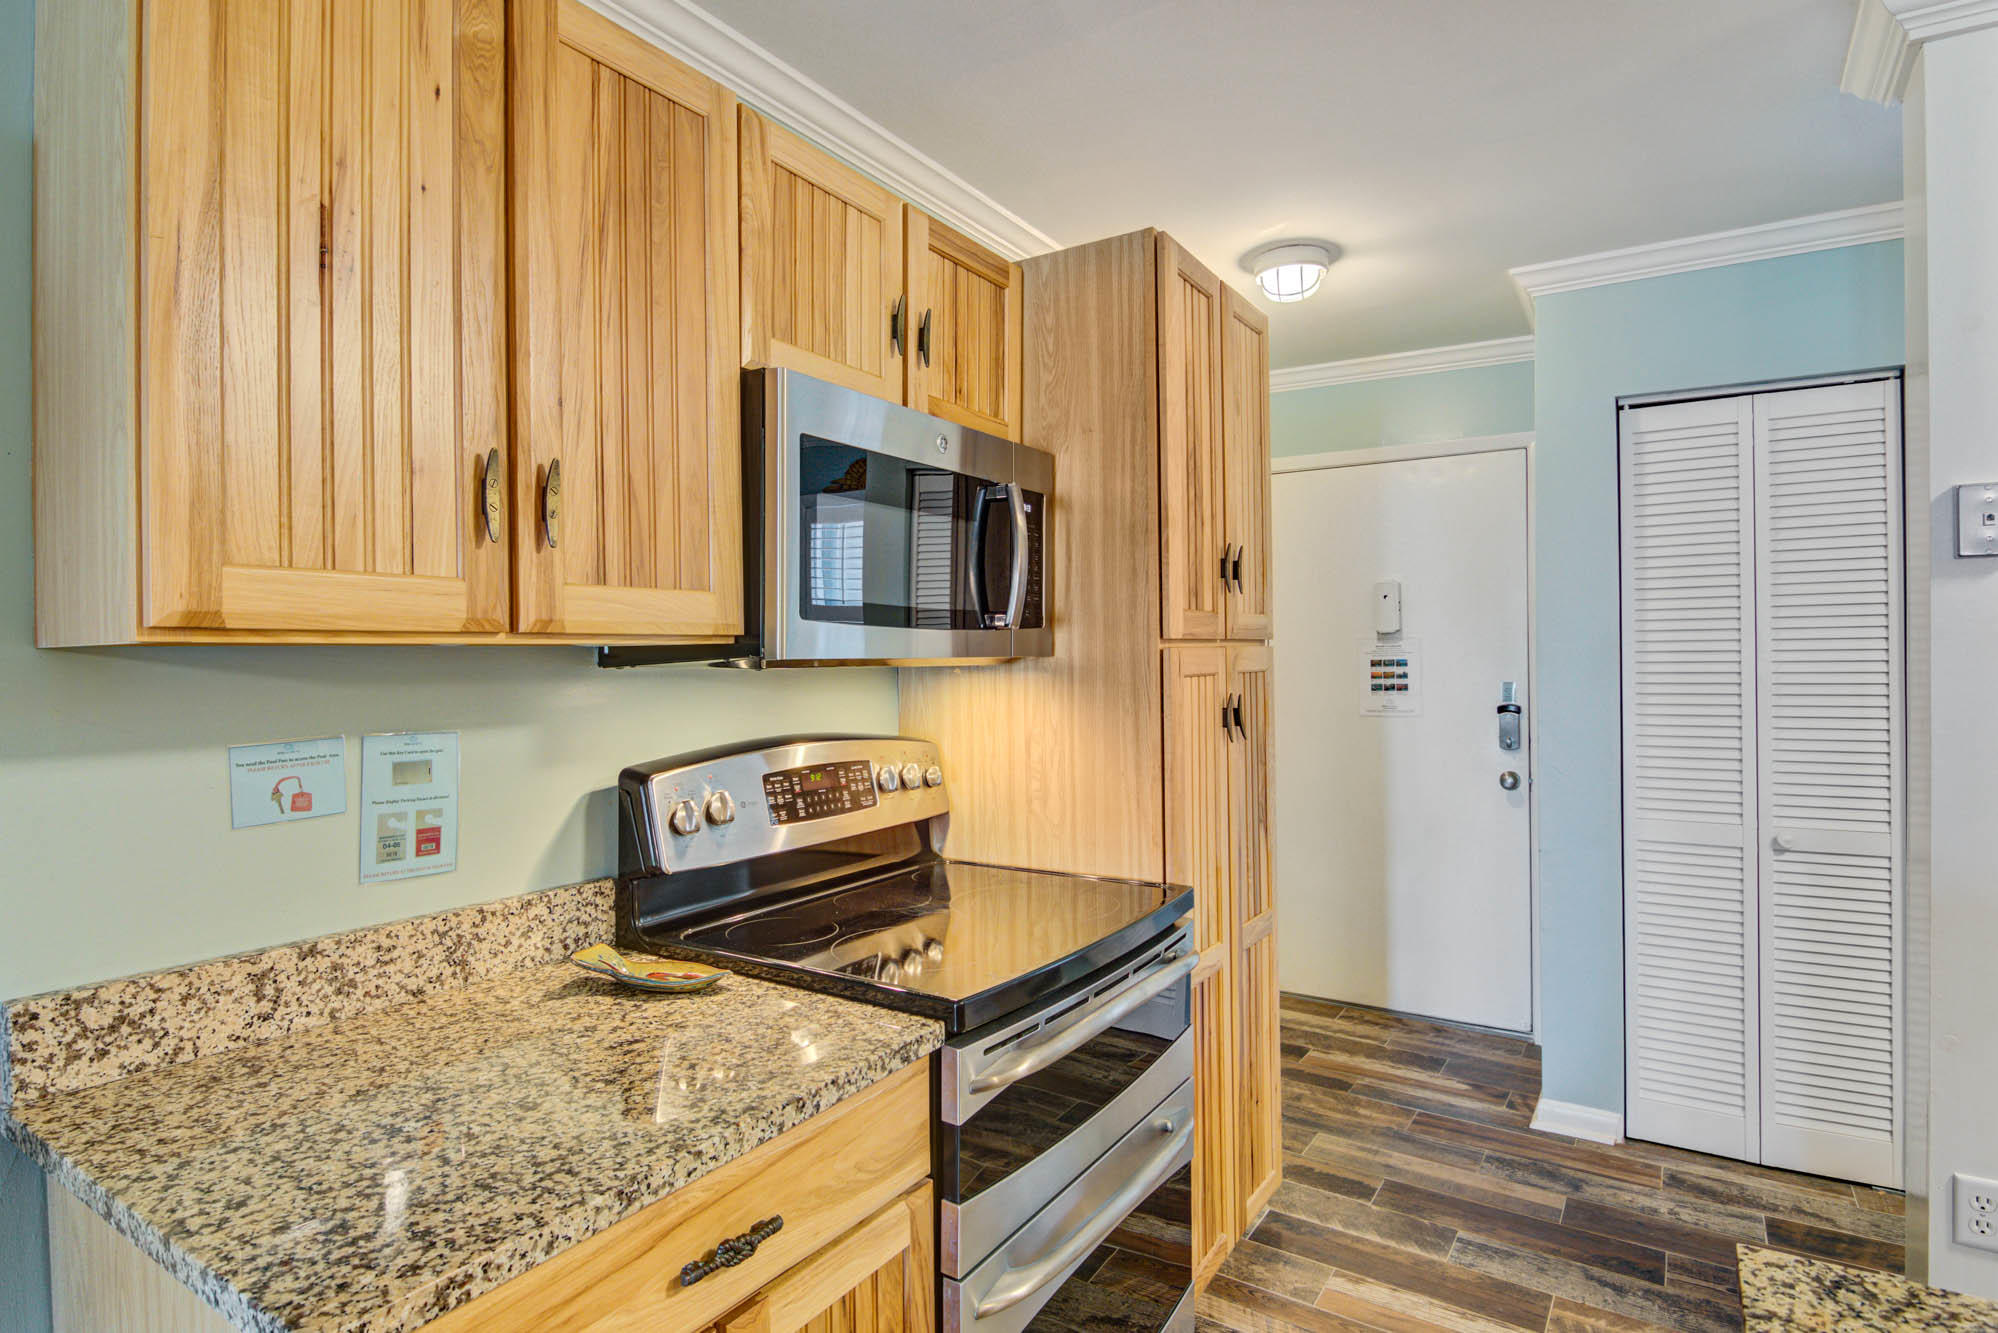 Mariners Cay Homes For Sale - 19 Mariners Cay, Folly Beach, SC - 16